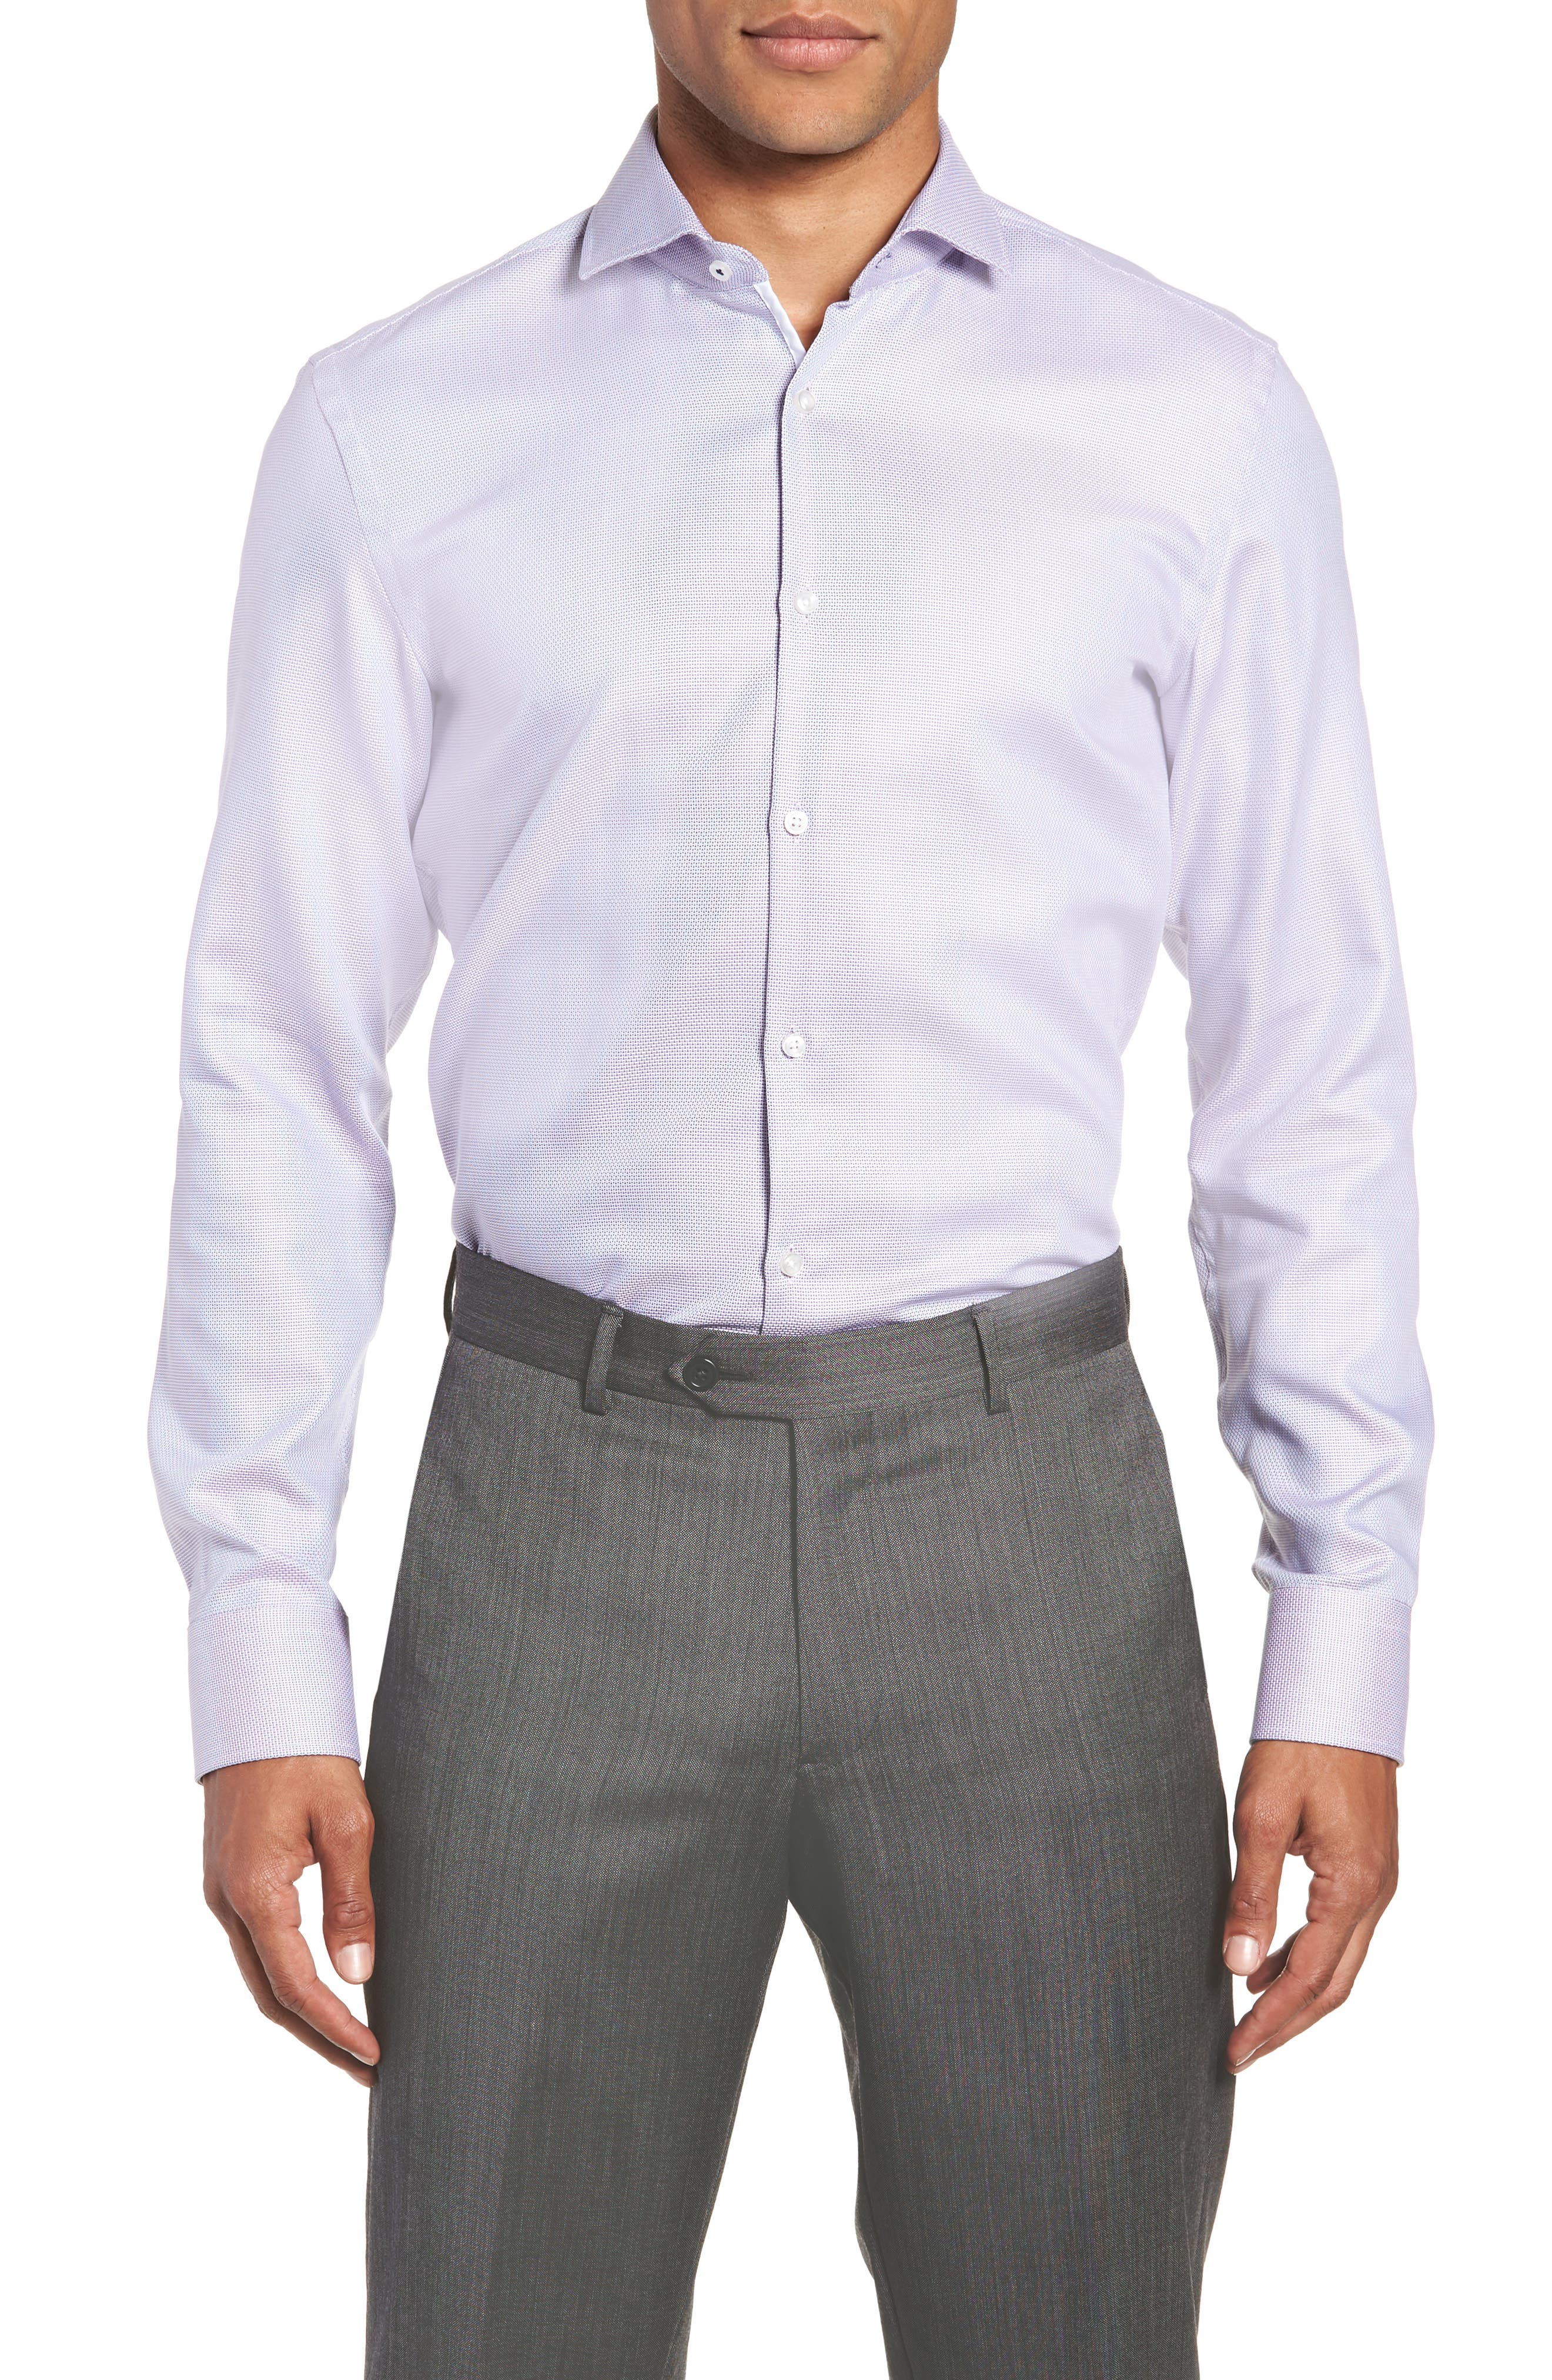 x Nordstrom Jerrin Slim Fit Solid Dress Shirt,                             Main thumbnail 1, color,                             RED